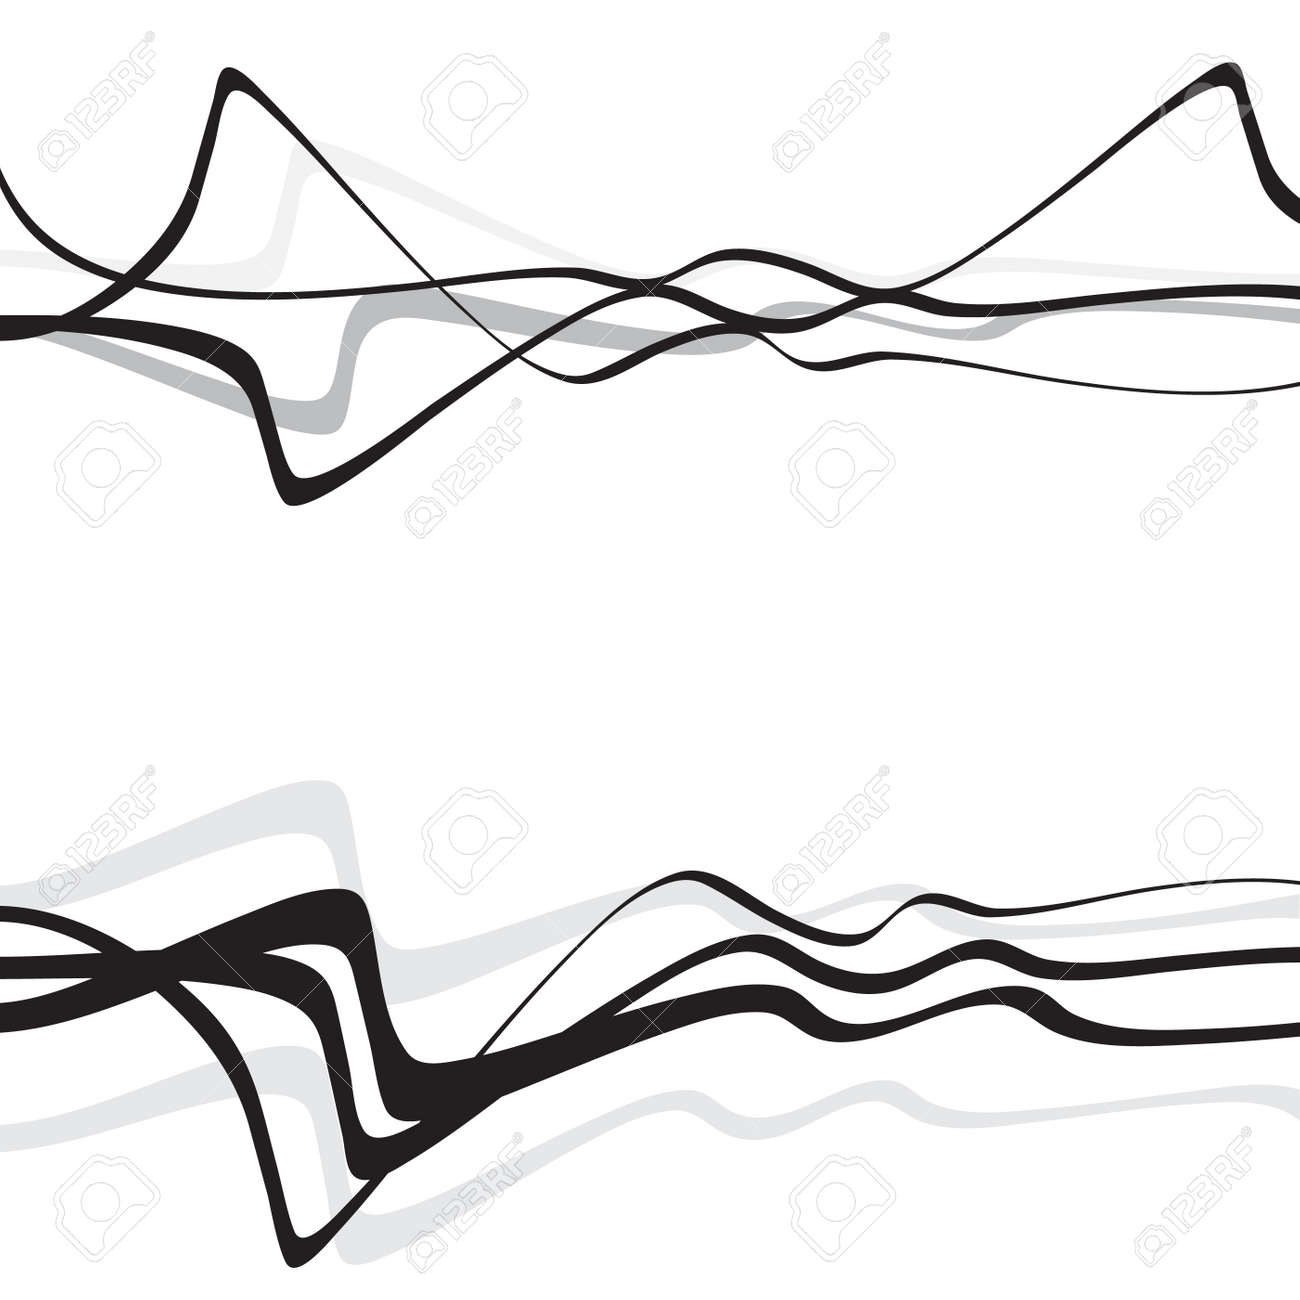 Abstract Art Design Abstract Background With Curvy Curved Lines